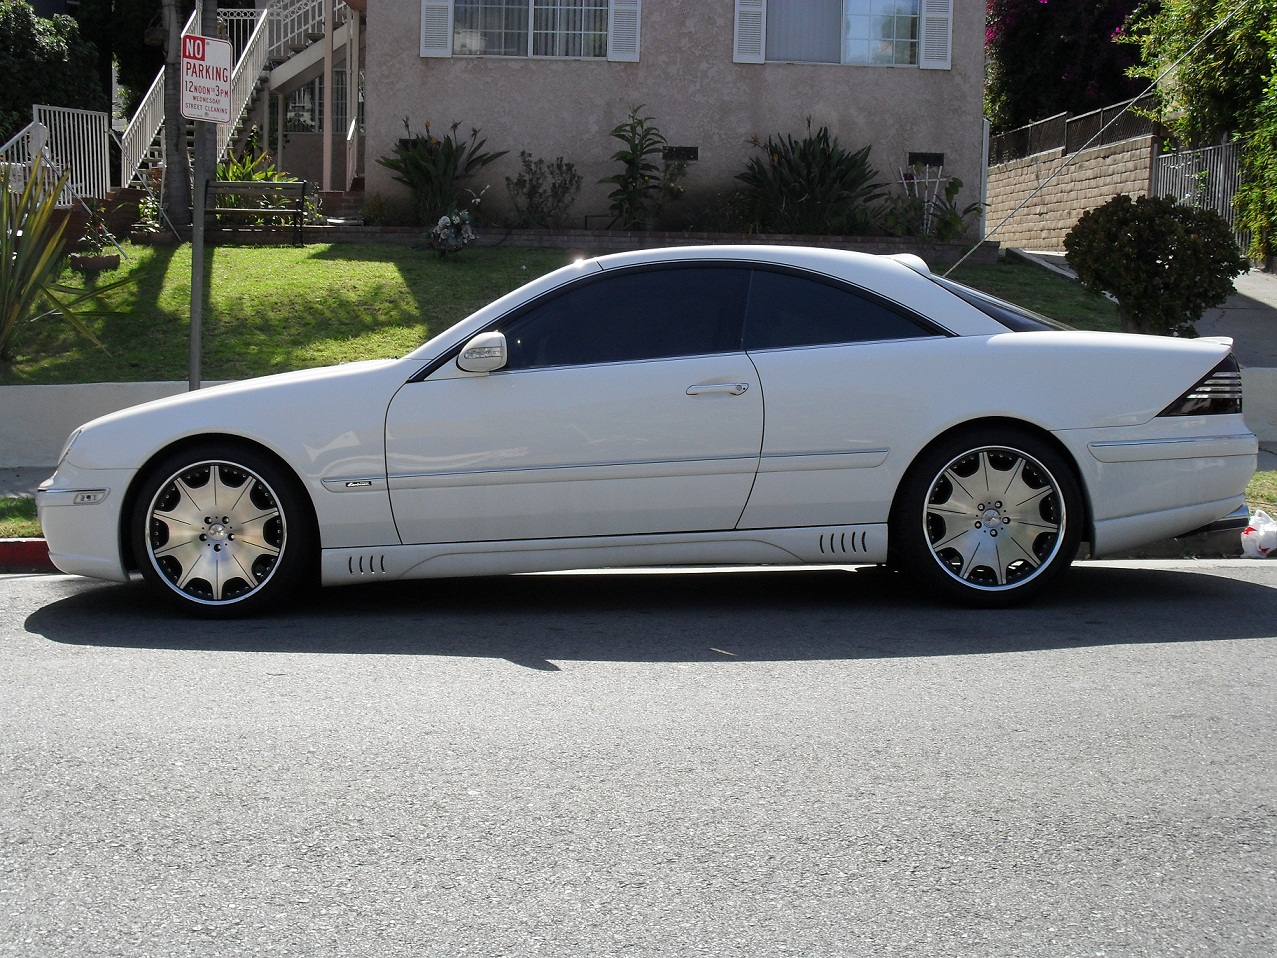 2002 mercedes benz cl class pictures cargurus for Mercedes benz cl500 review